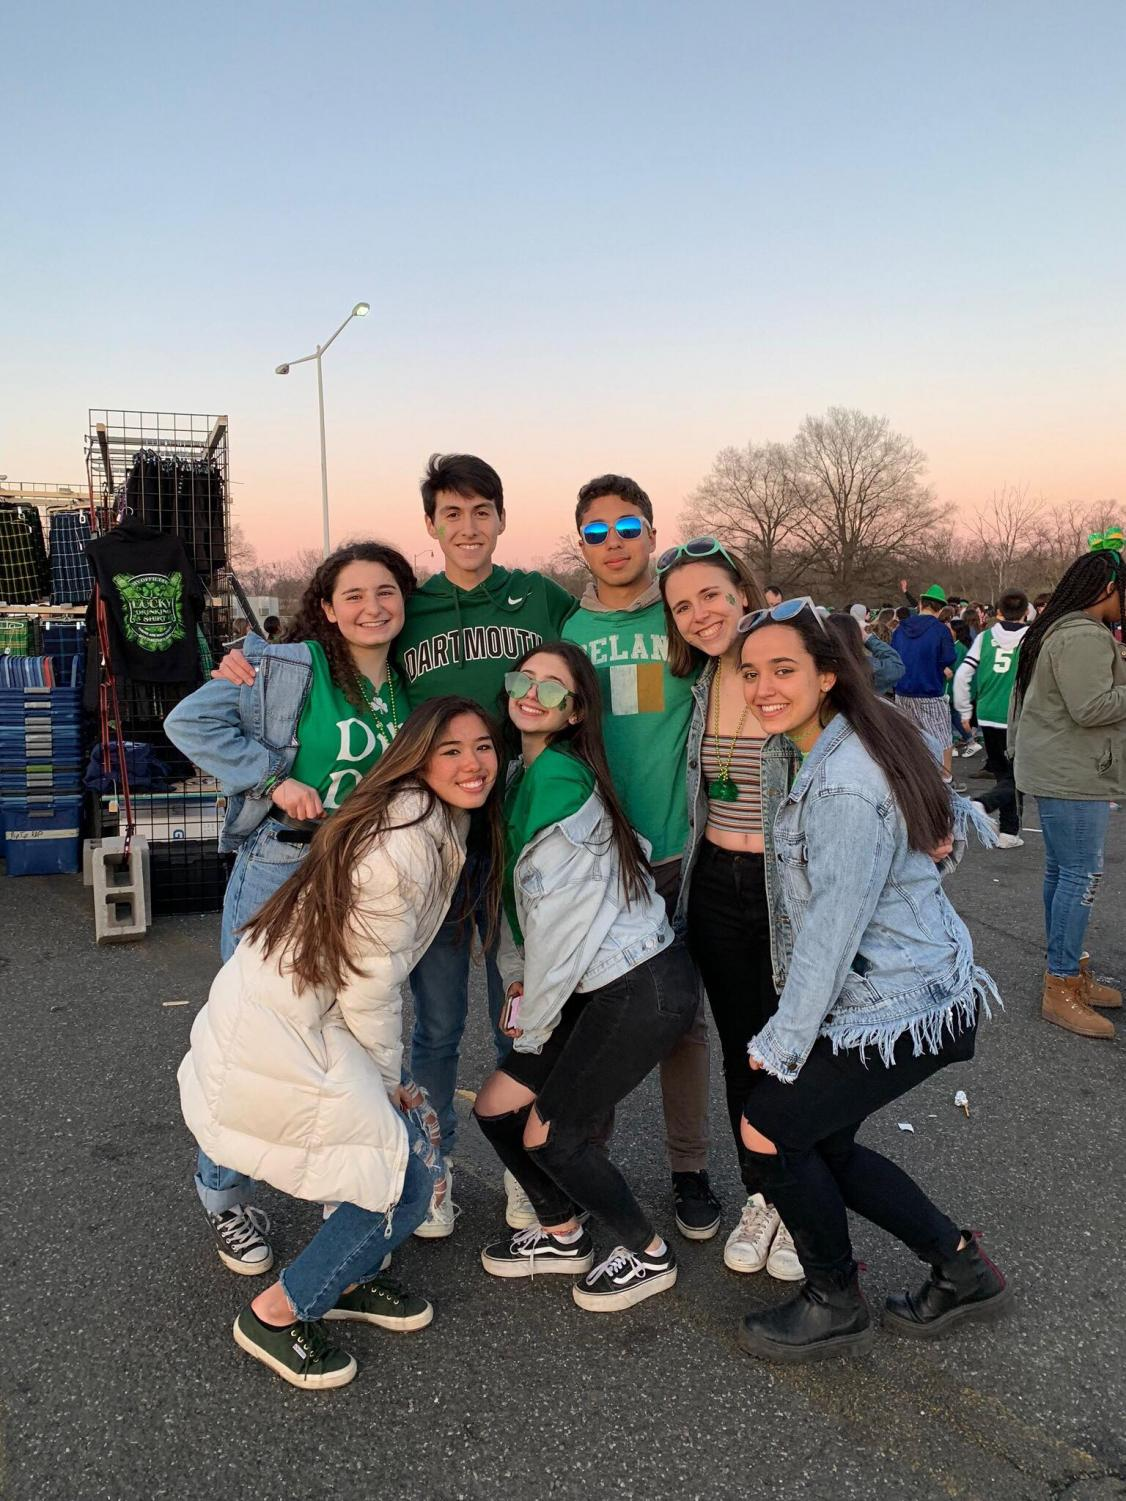 A group of Whitman students, including author Danny Donoso second in from top left, attended Shamrock Festival March 23. The annual Festival featured Irish traditions and music and celebrated St. Patrick's Day.